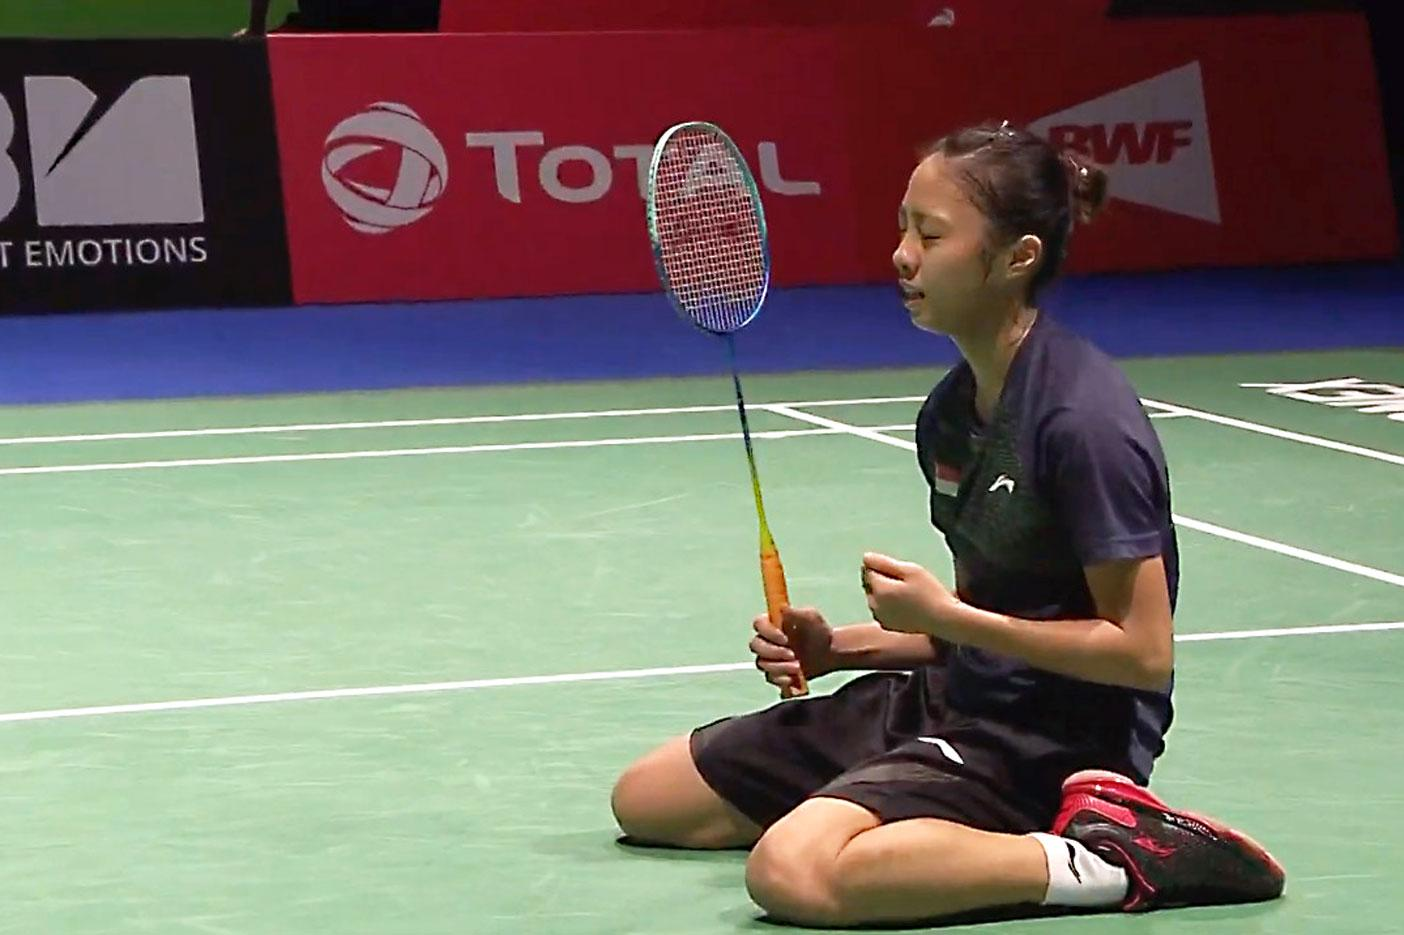 Badminton: Yeo Jia Min is first Singapore women's singles player to reach World Championships q-finals